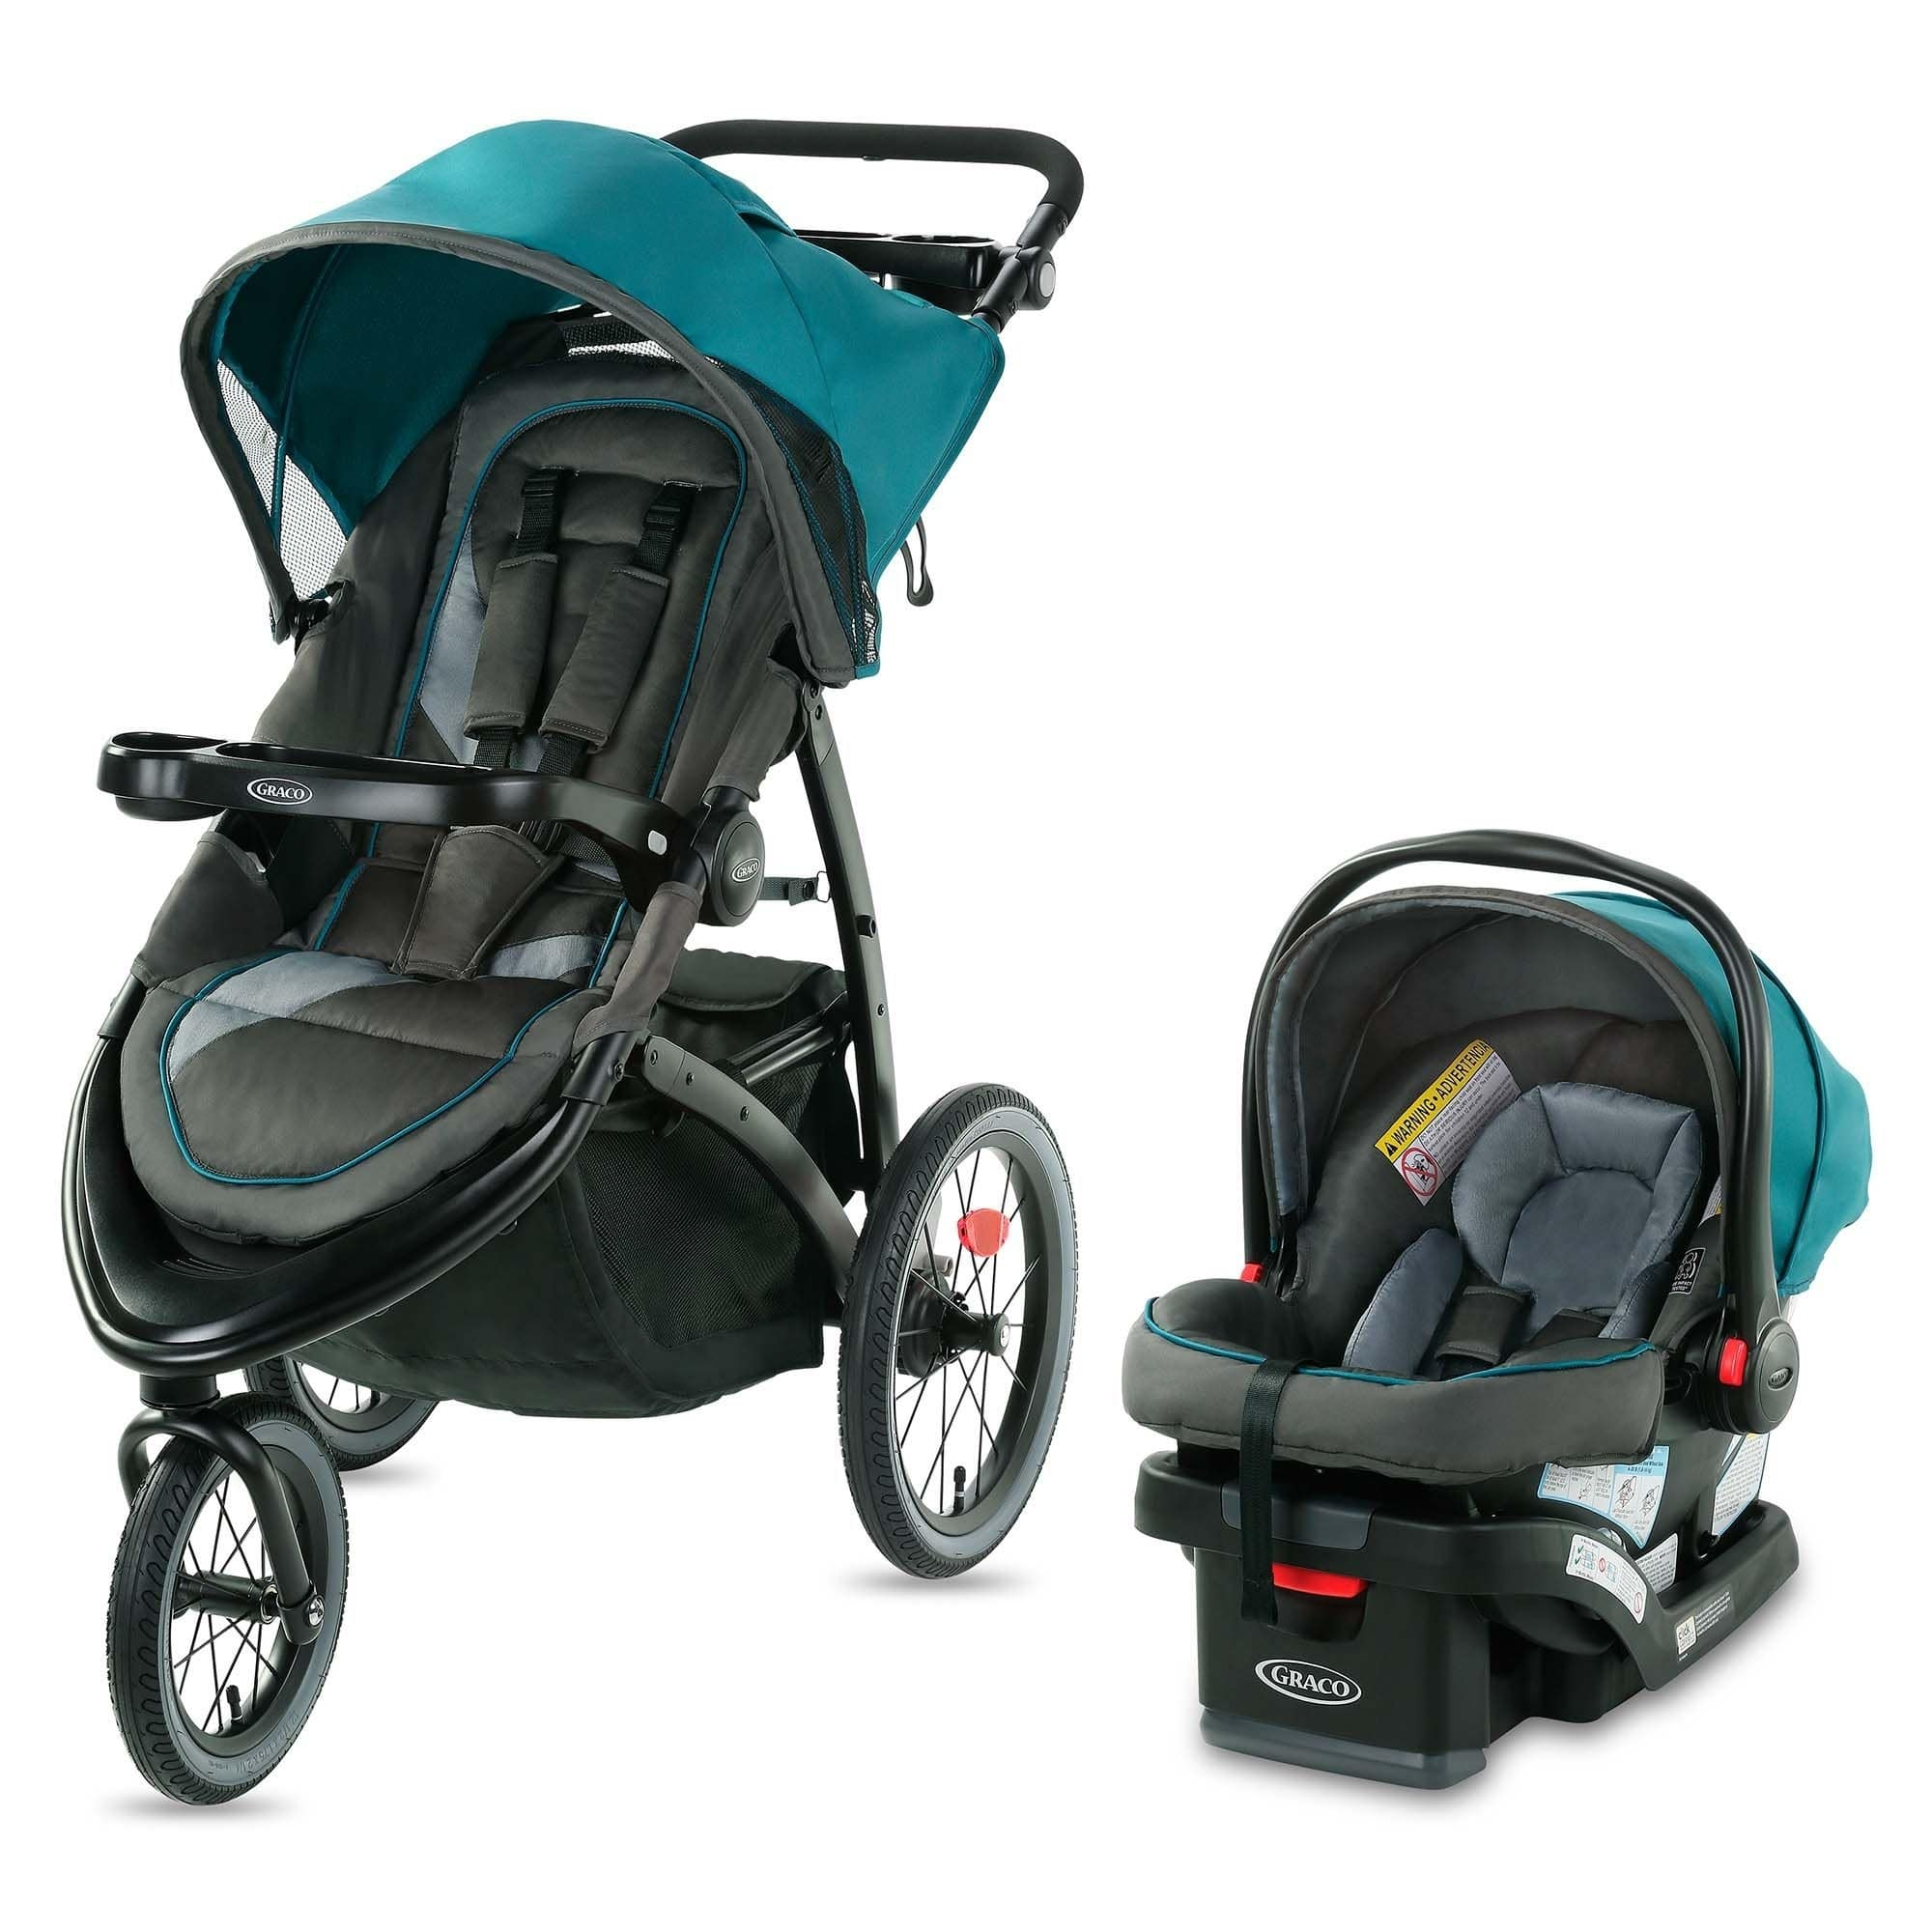 Graco FastAction Jogger LX Travel System, Seaton, Gray